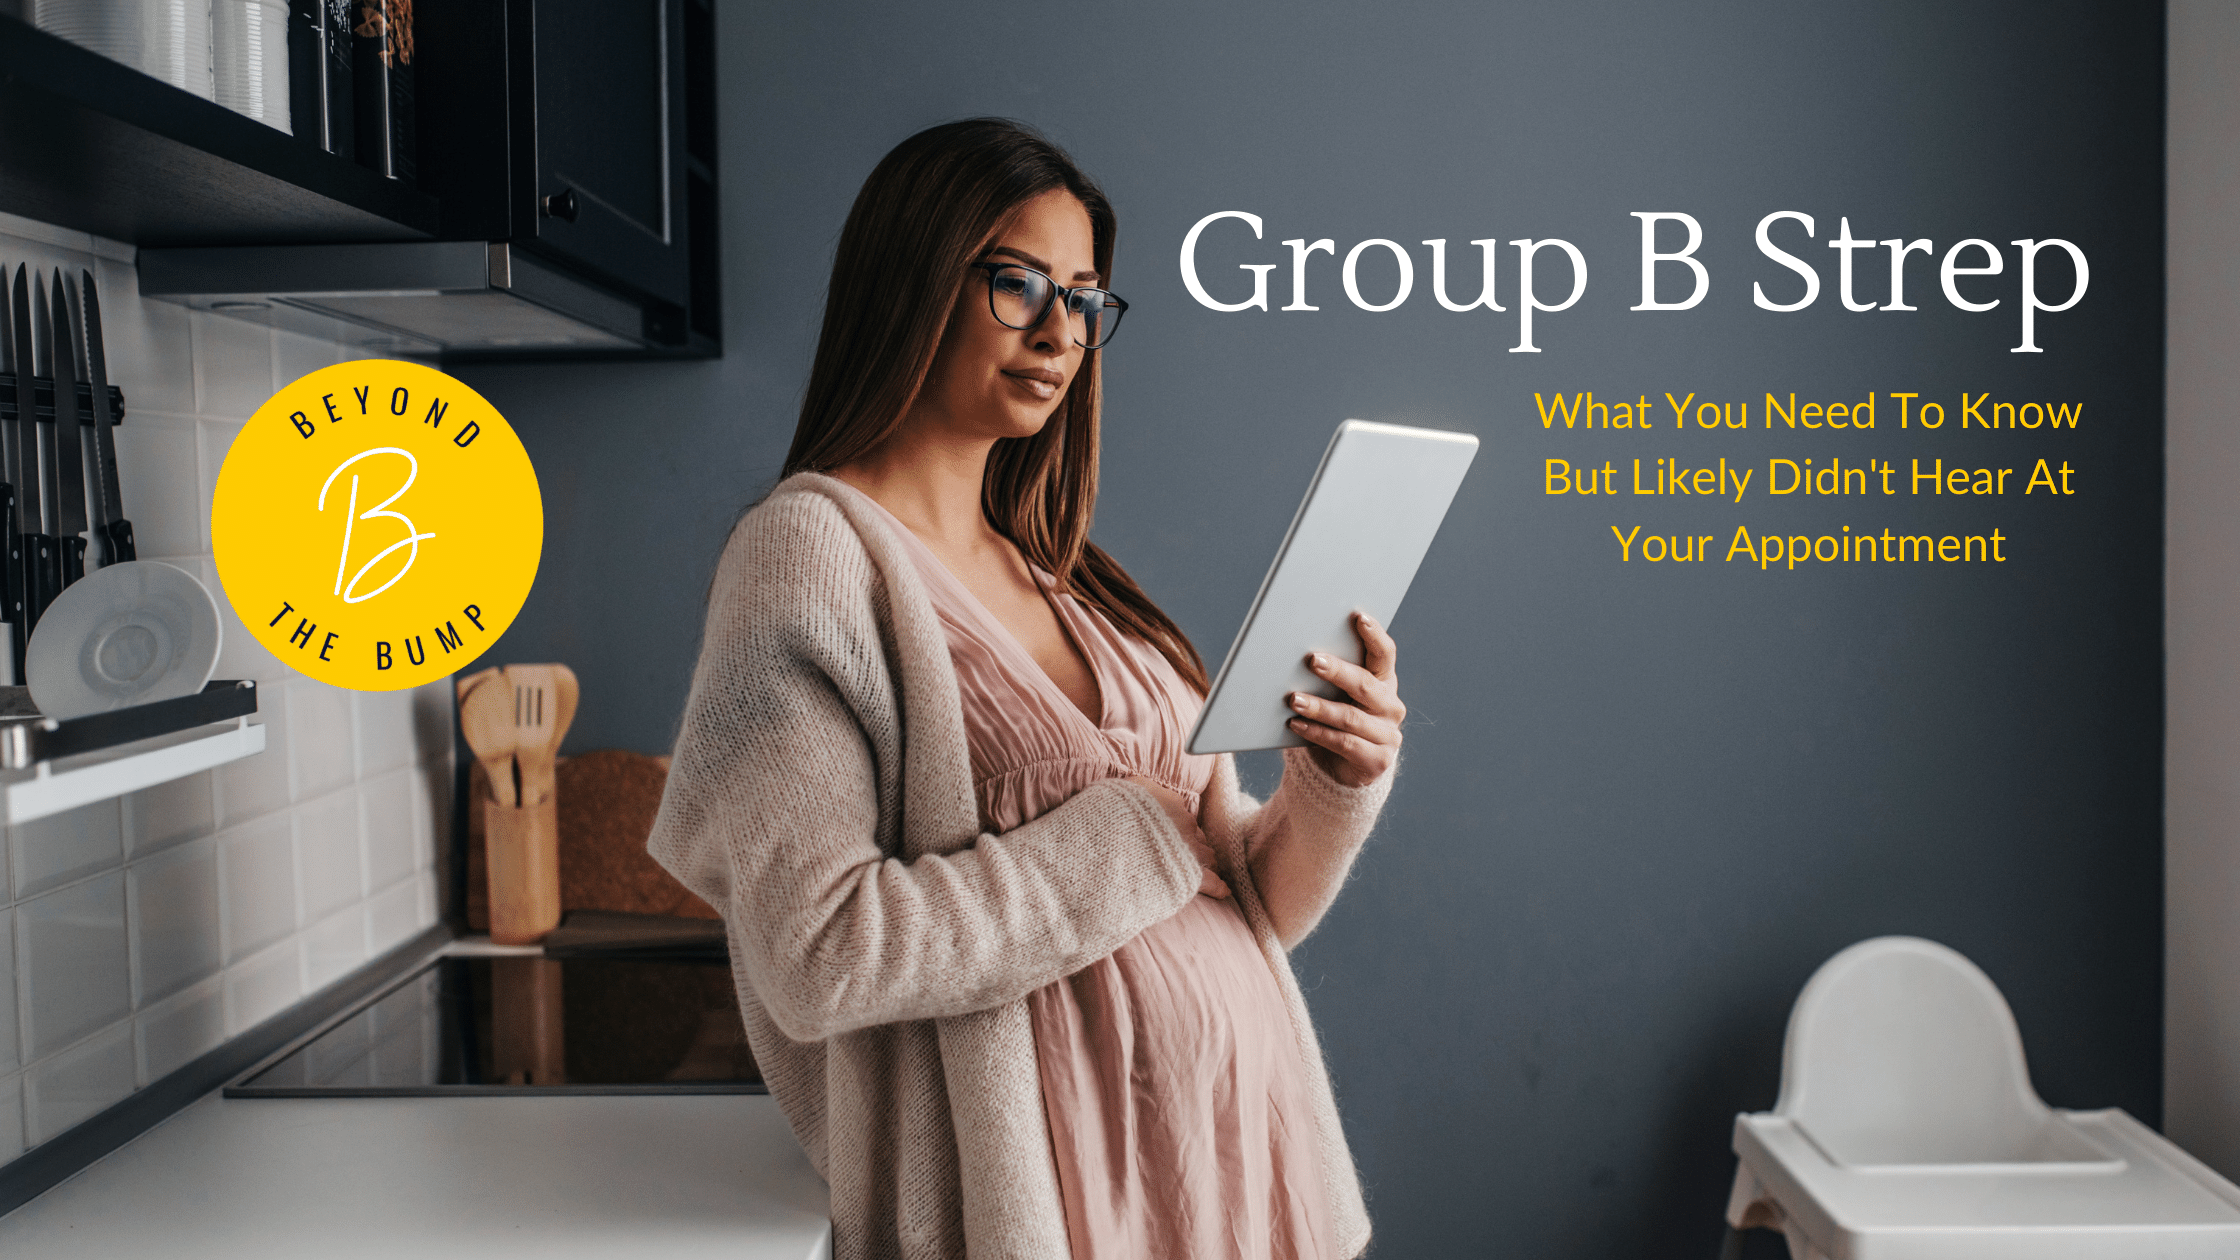 Woman standing in kitchen reading a tablet. Text: Group B Strep What You Need To Know But Likely Were Not Told At Your appointment